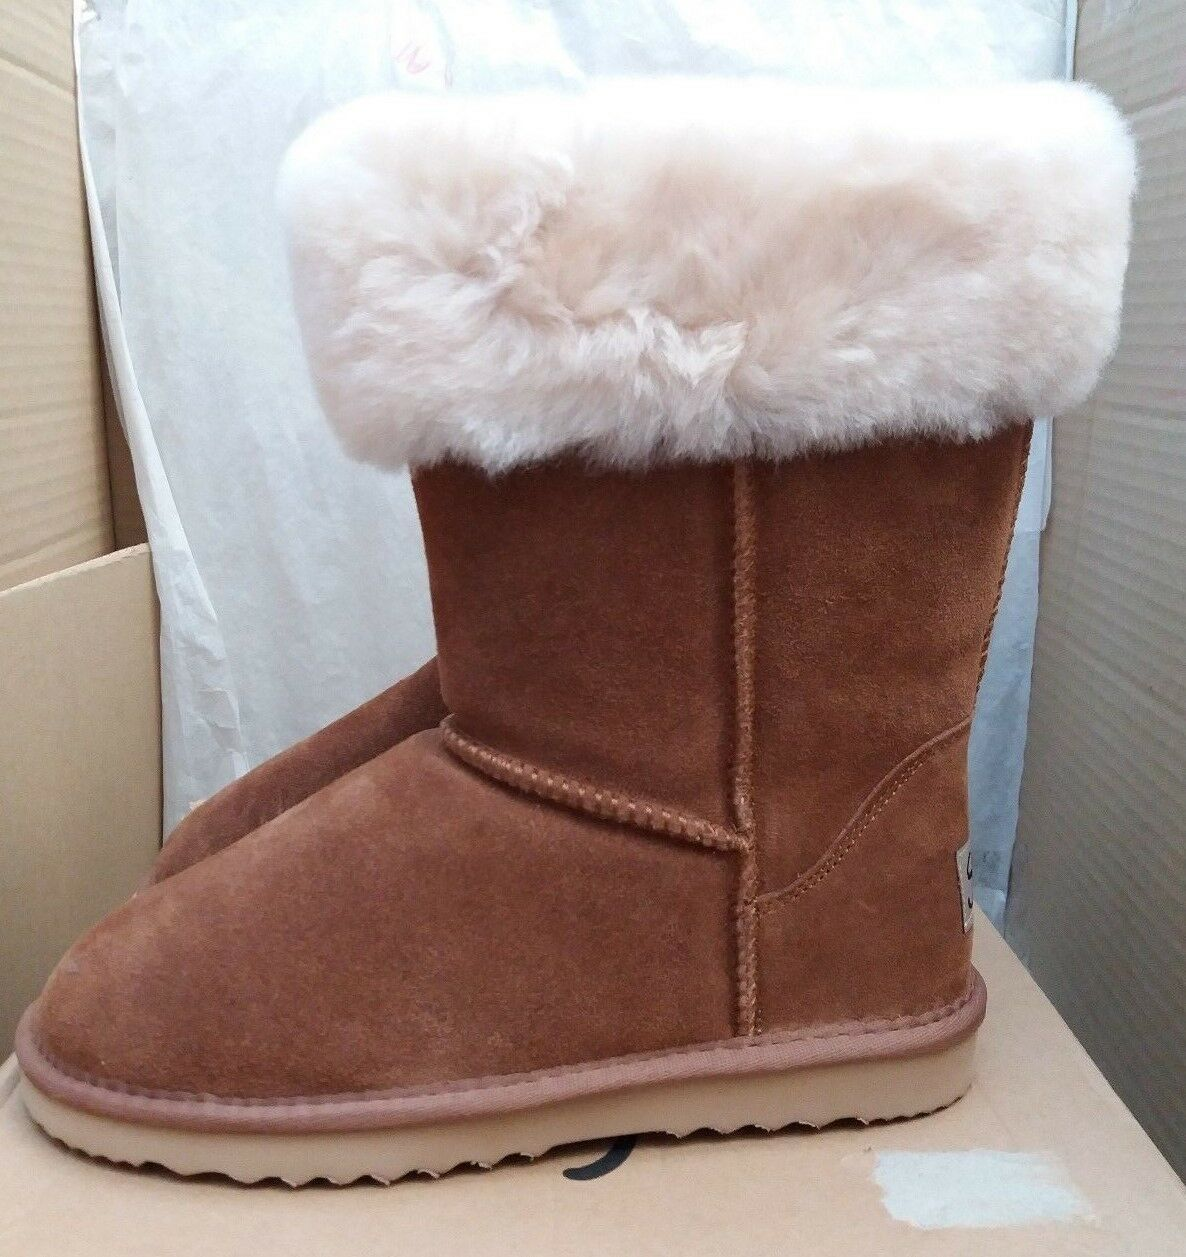 Snow Paw 5826CHEL06 Suede & Sheepskin Winter Boots - Chestnut